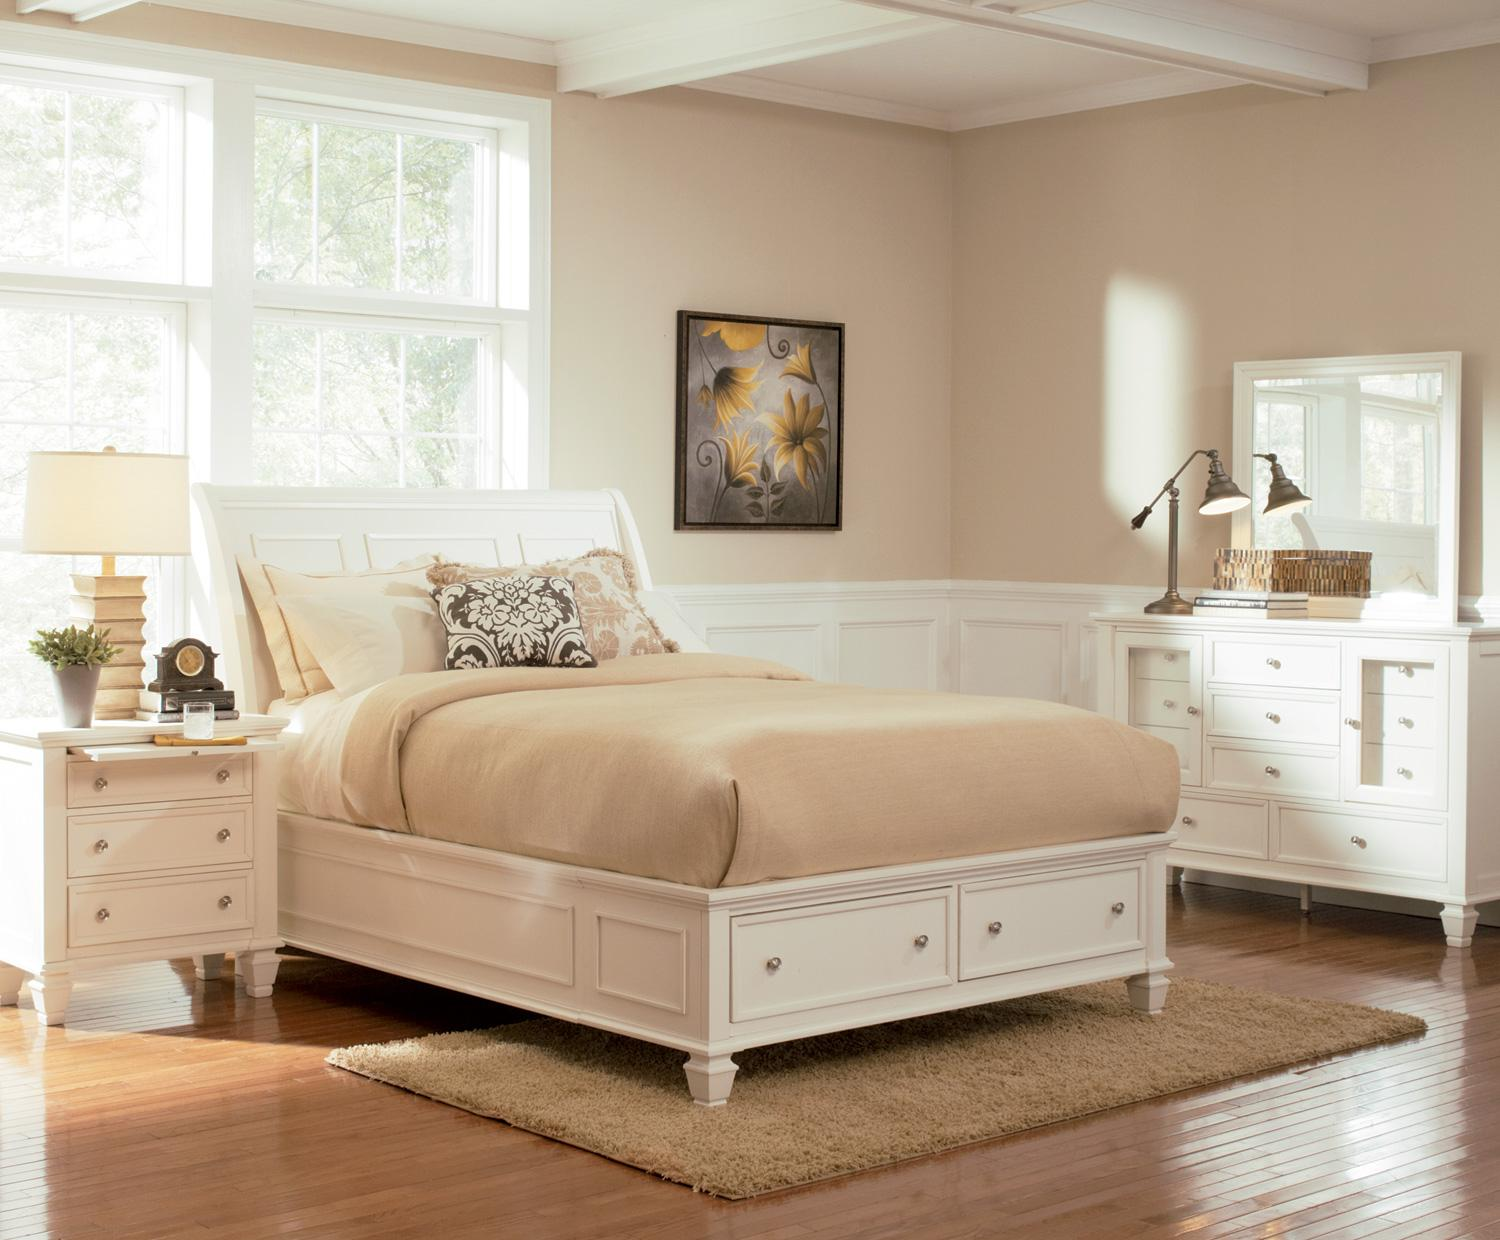 Sandy Beach Bedroom - Affordable Queen Size Beds - Discount Bedroom Furniture - Queen Platform Bedroom Sets - LaPorta Furniture Company - Online Discount Furniture Store